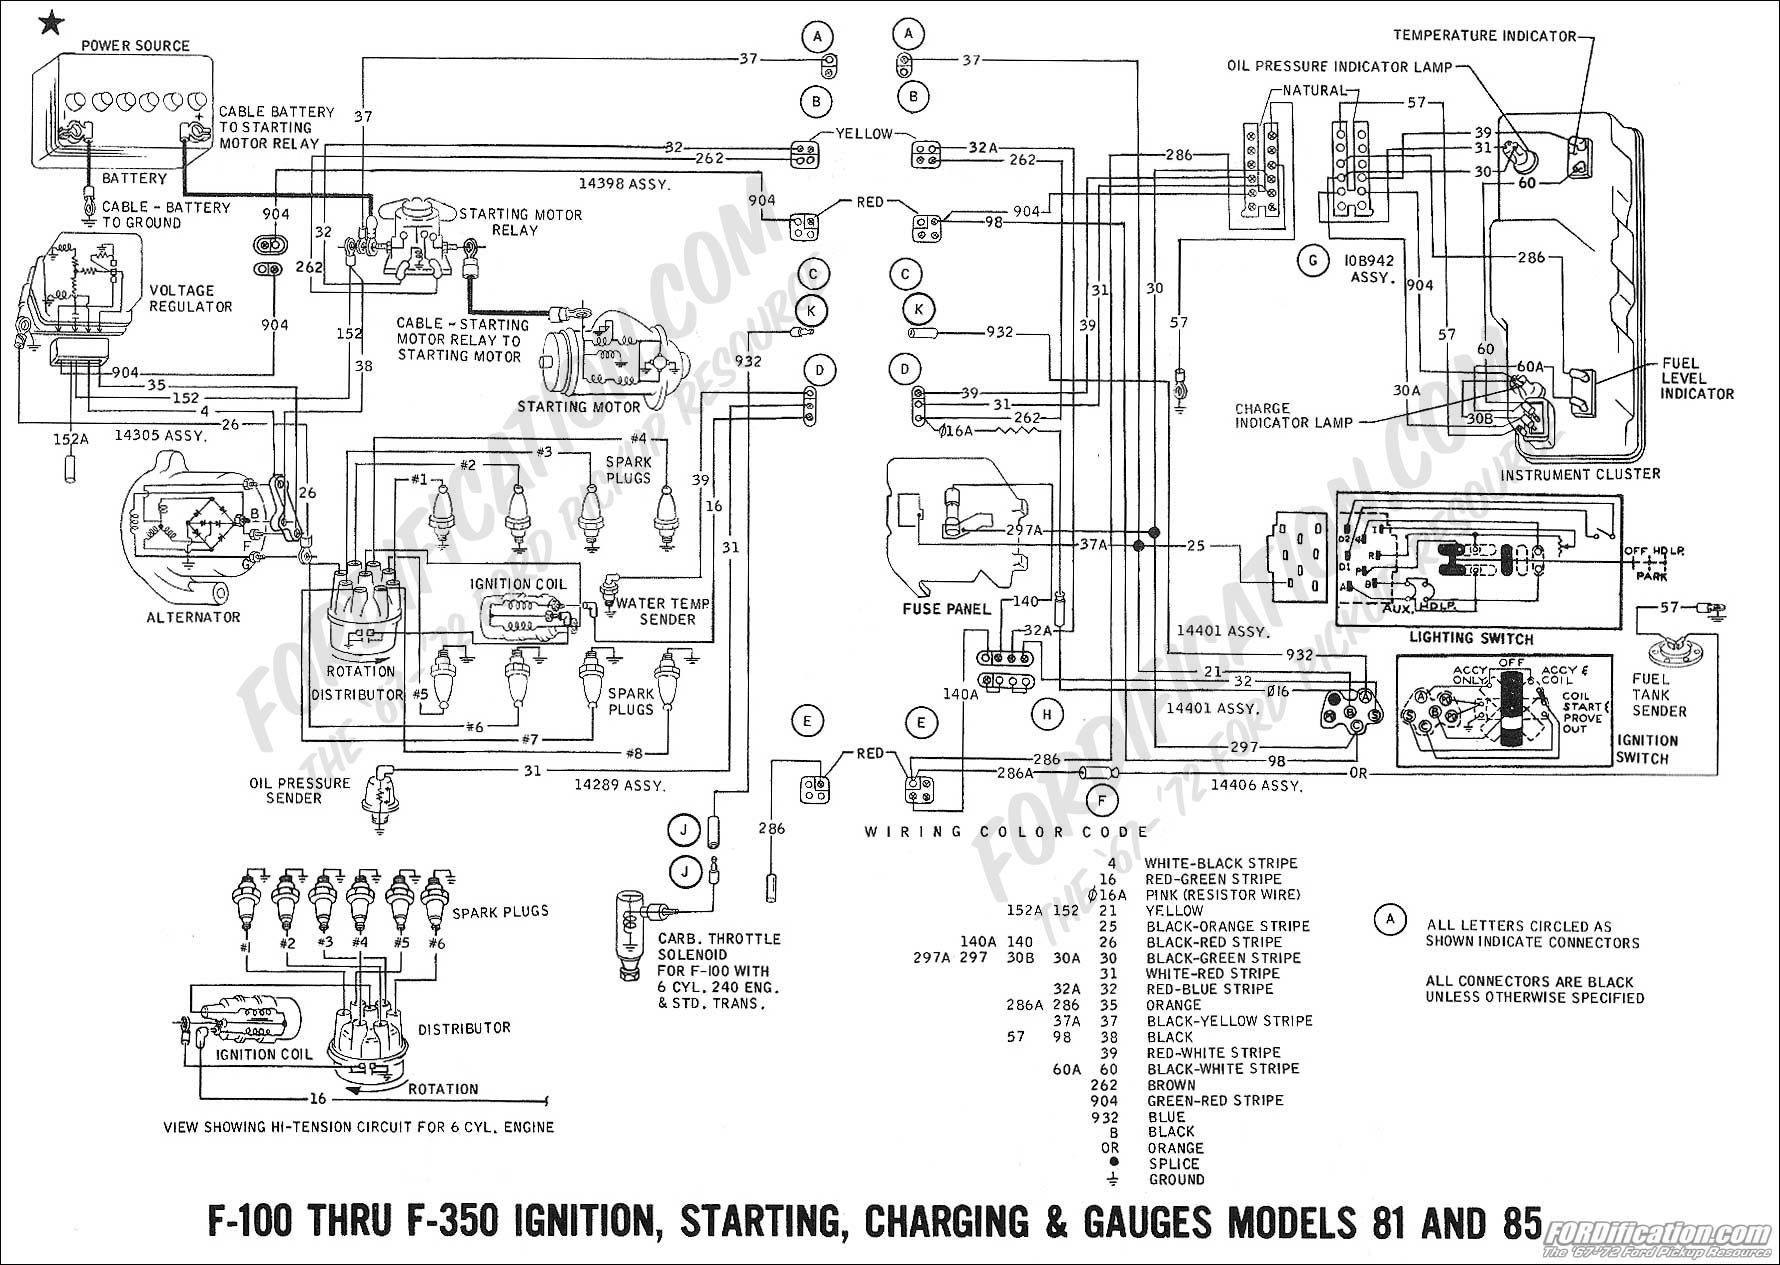 hight resolution of 1956 f100 wiring diagram wiring diagram dat 1956 ford f100 headlight switch wiring diagram 1956 f100 wiring diagram